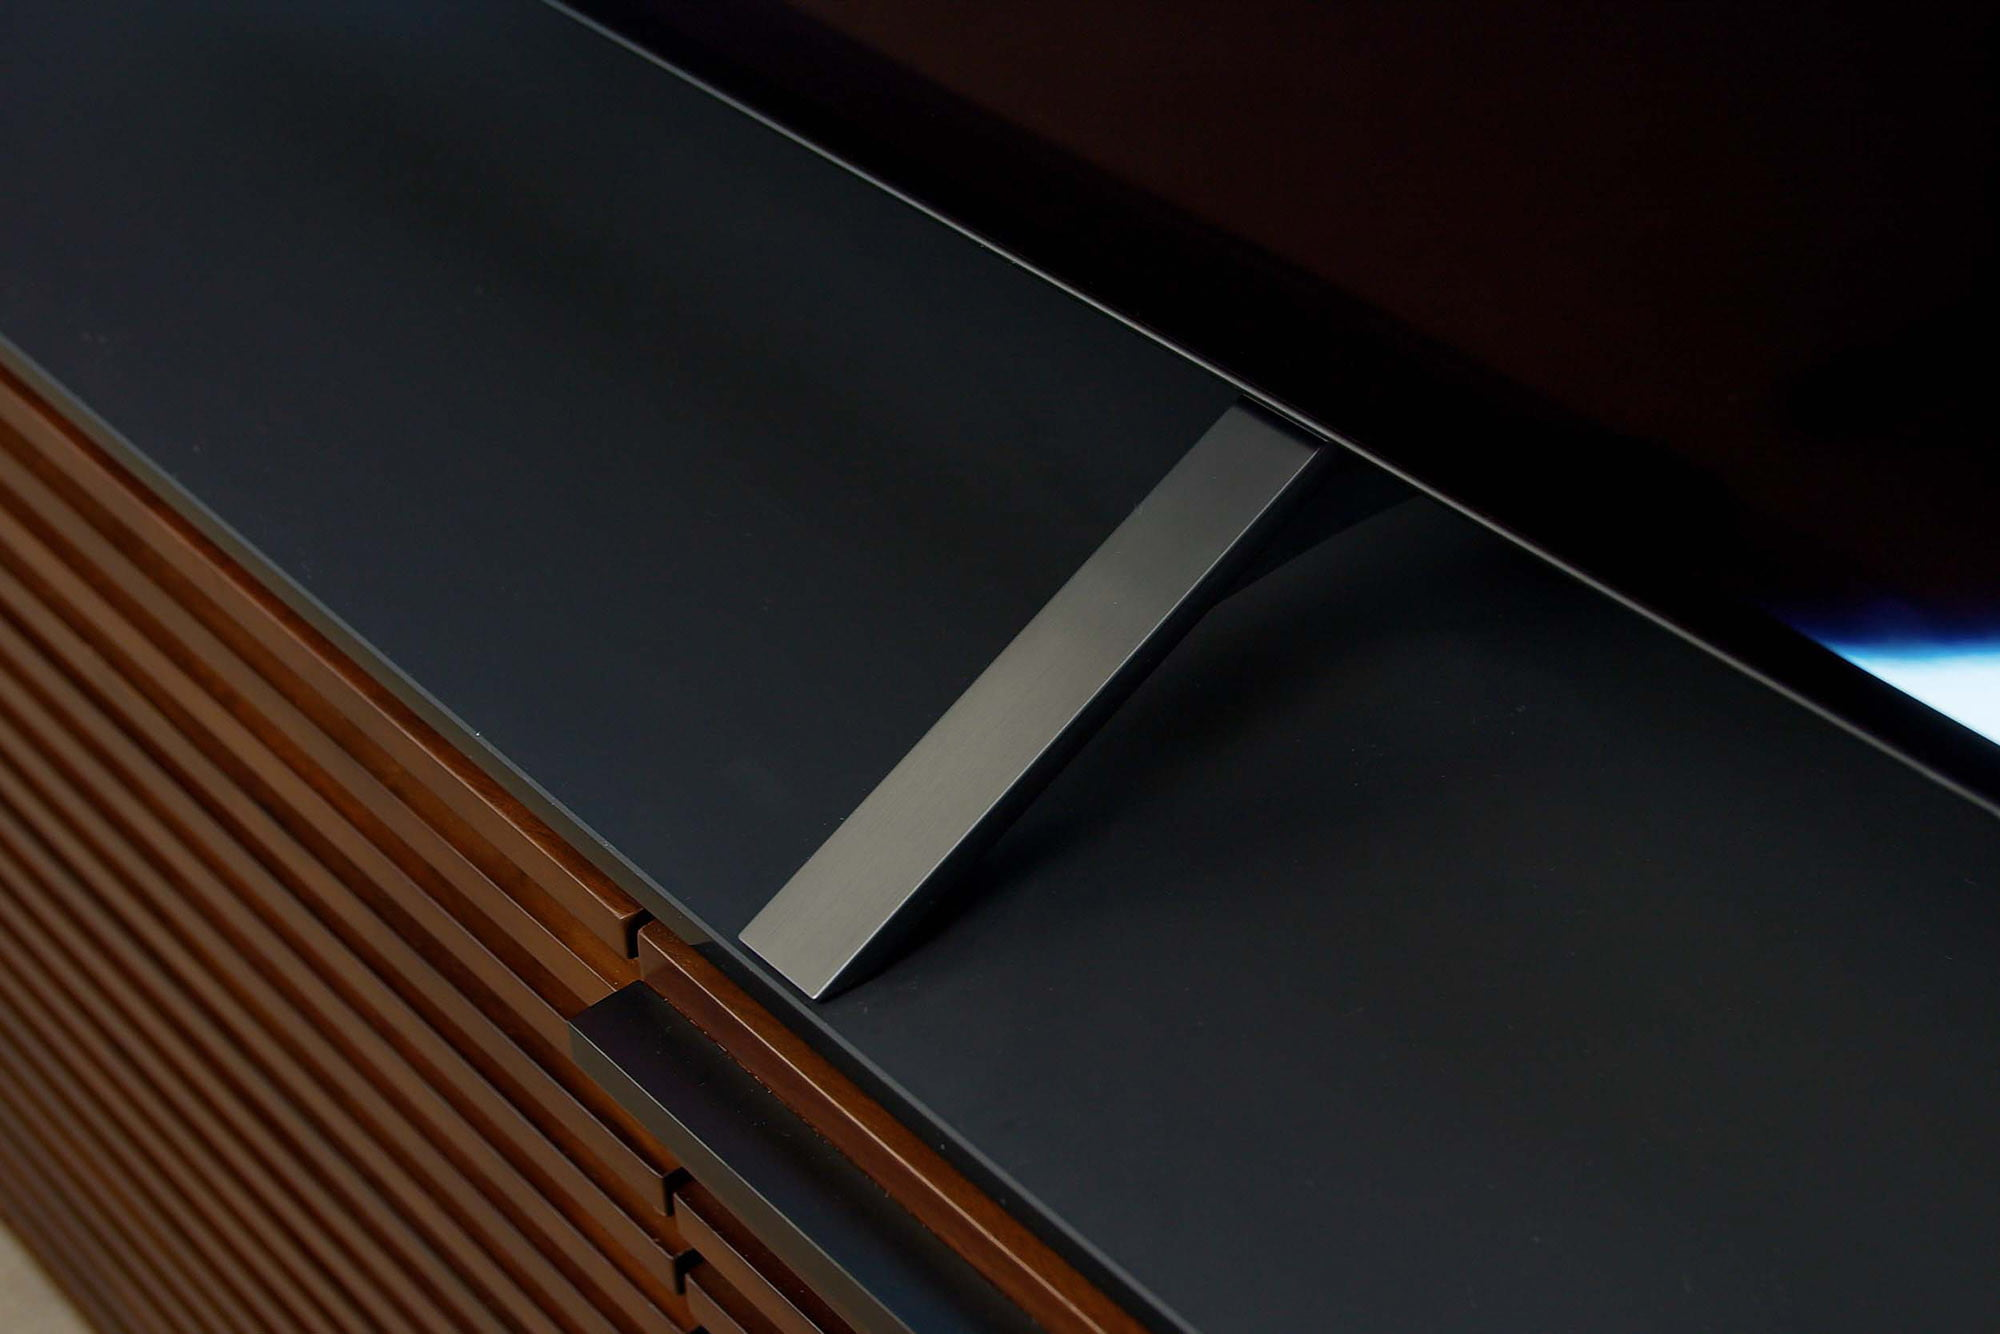 Close up image of the LG A1 OLED 4K HDR TV's stand